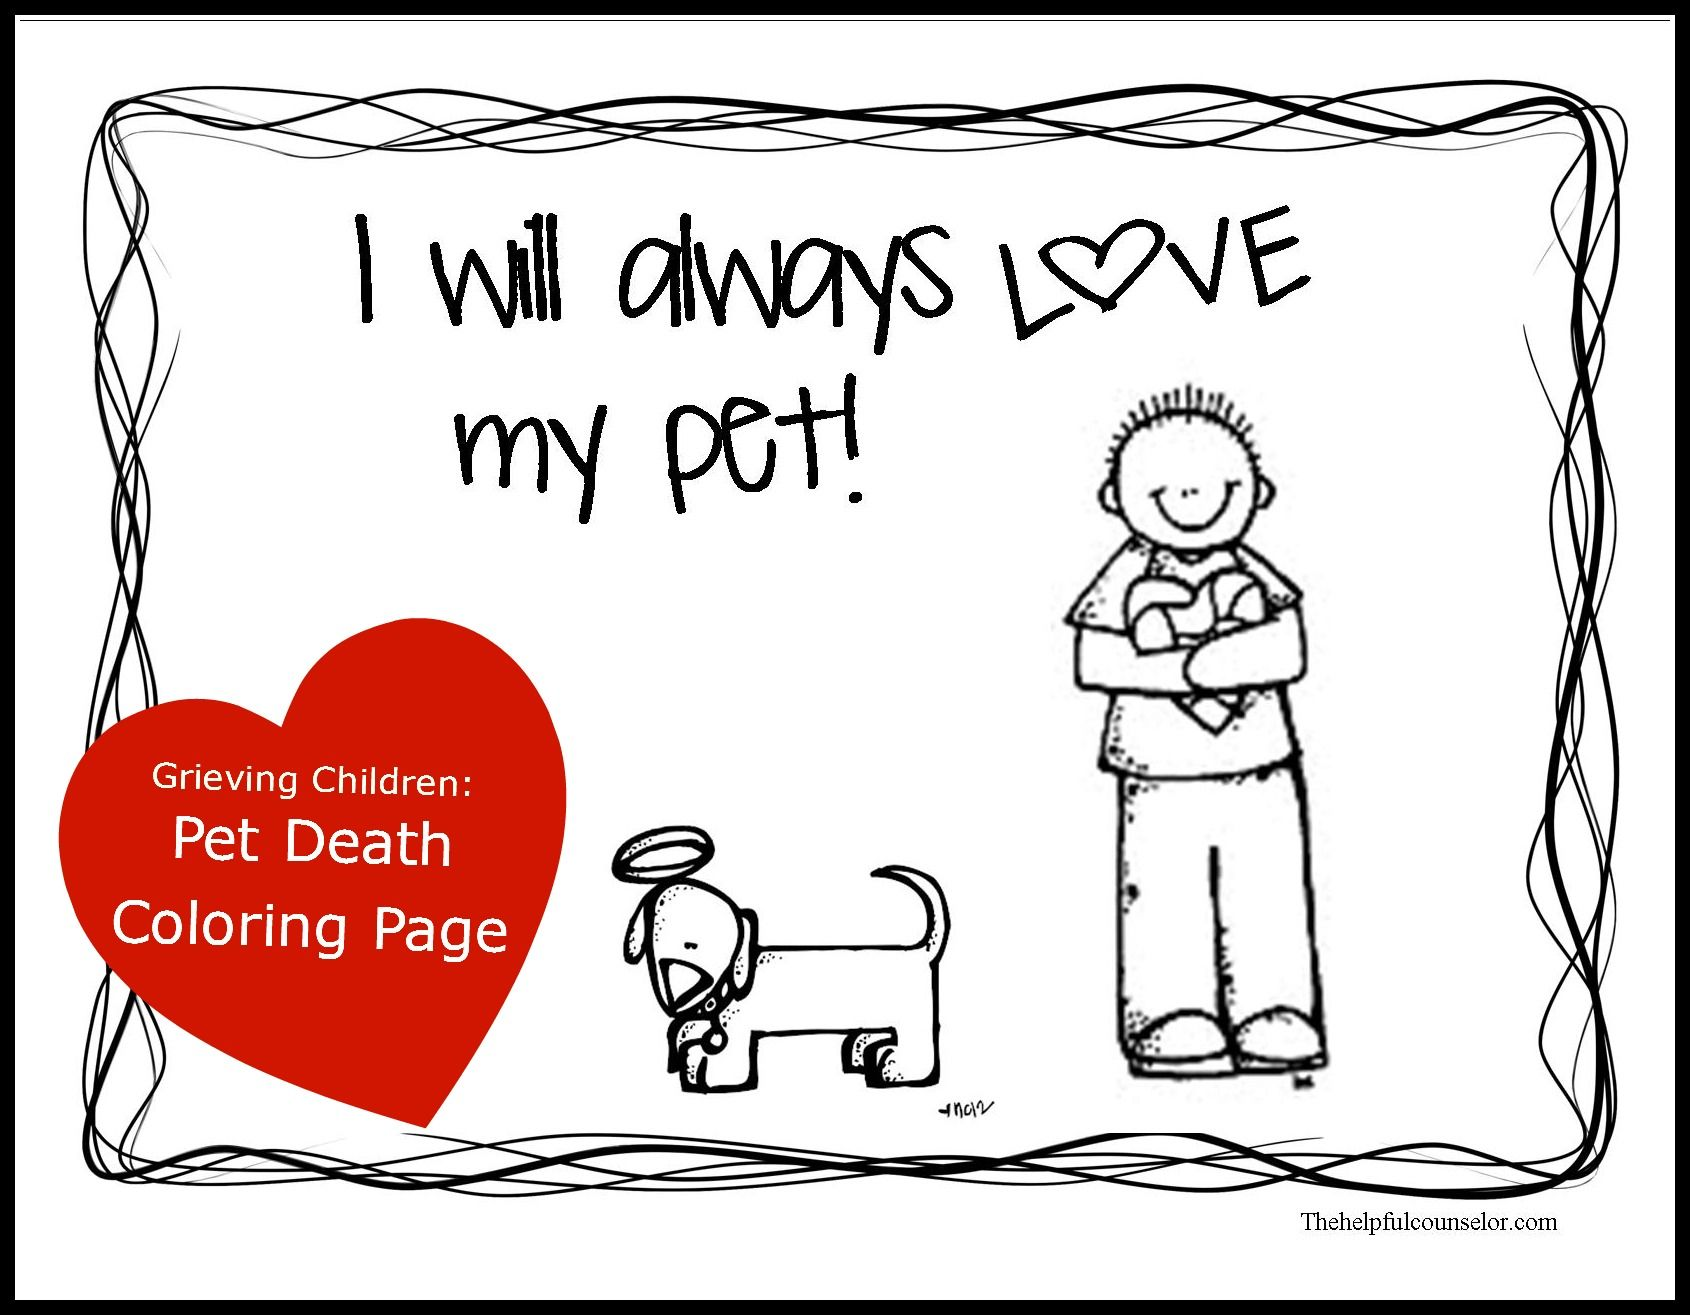 coloring pages on grief - photo#9